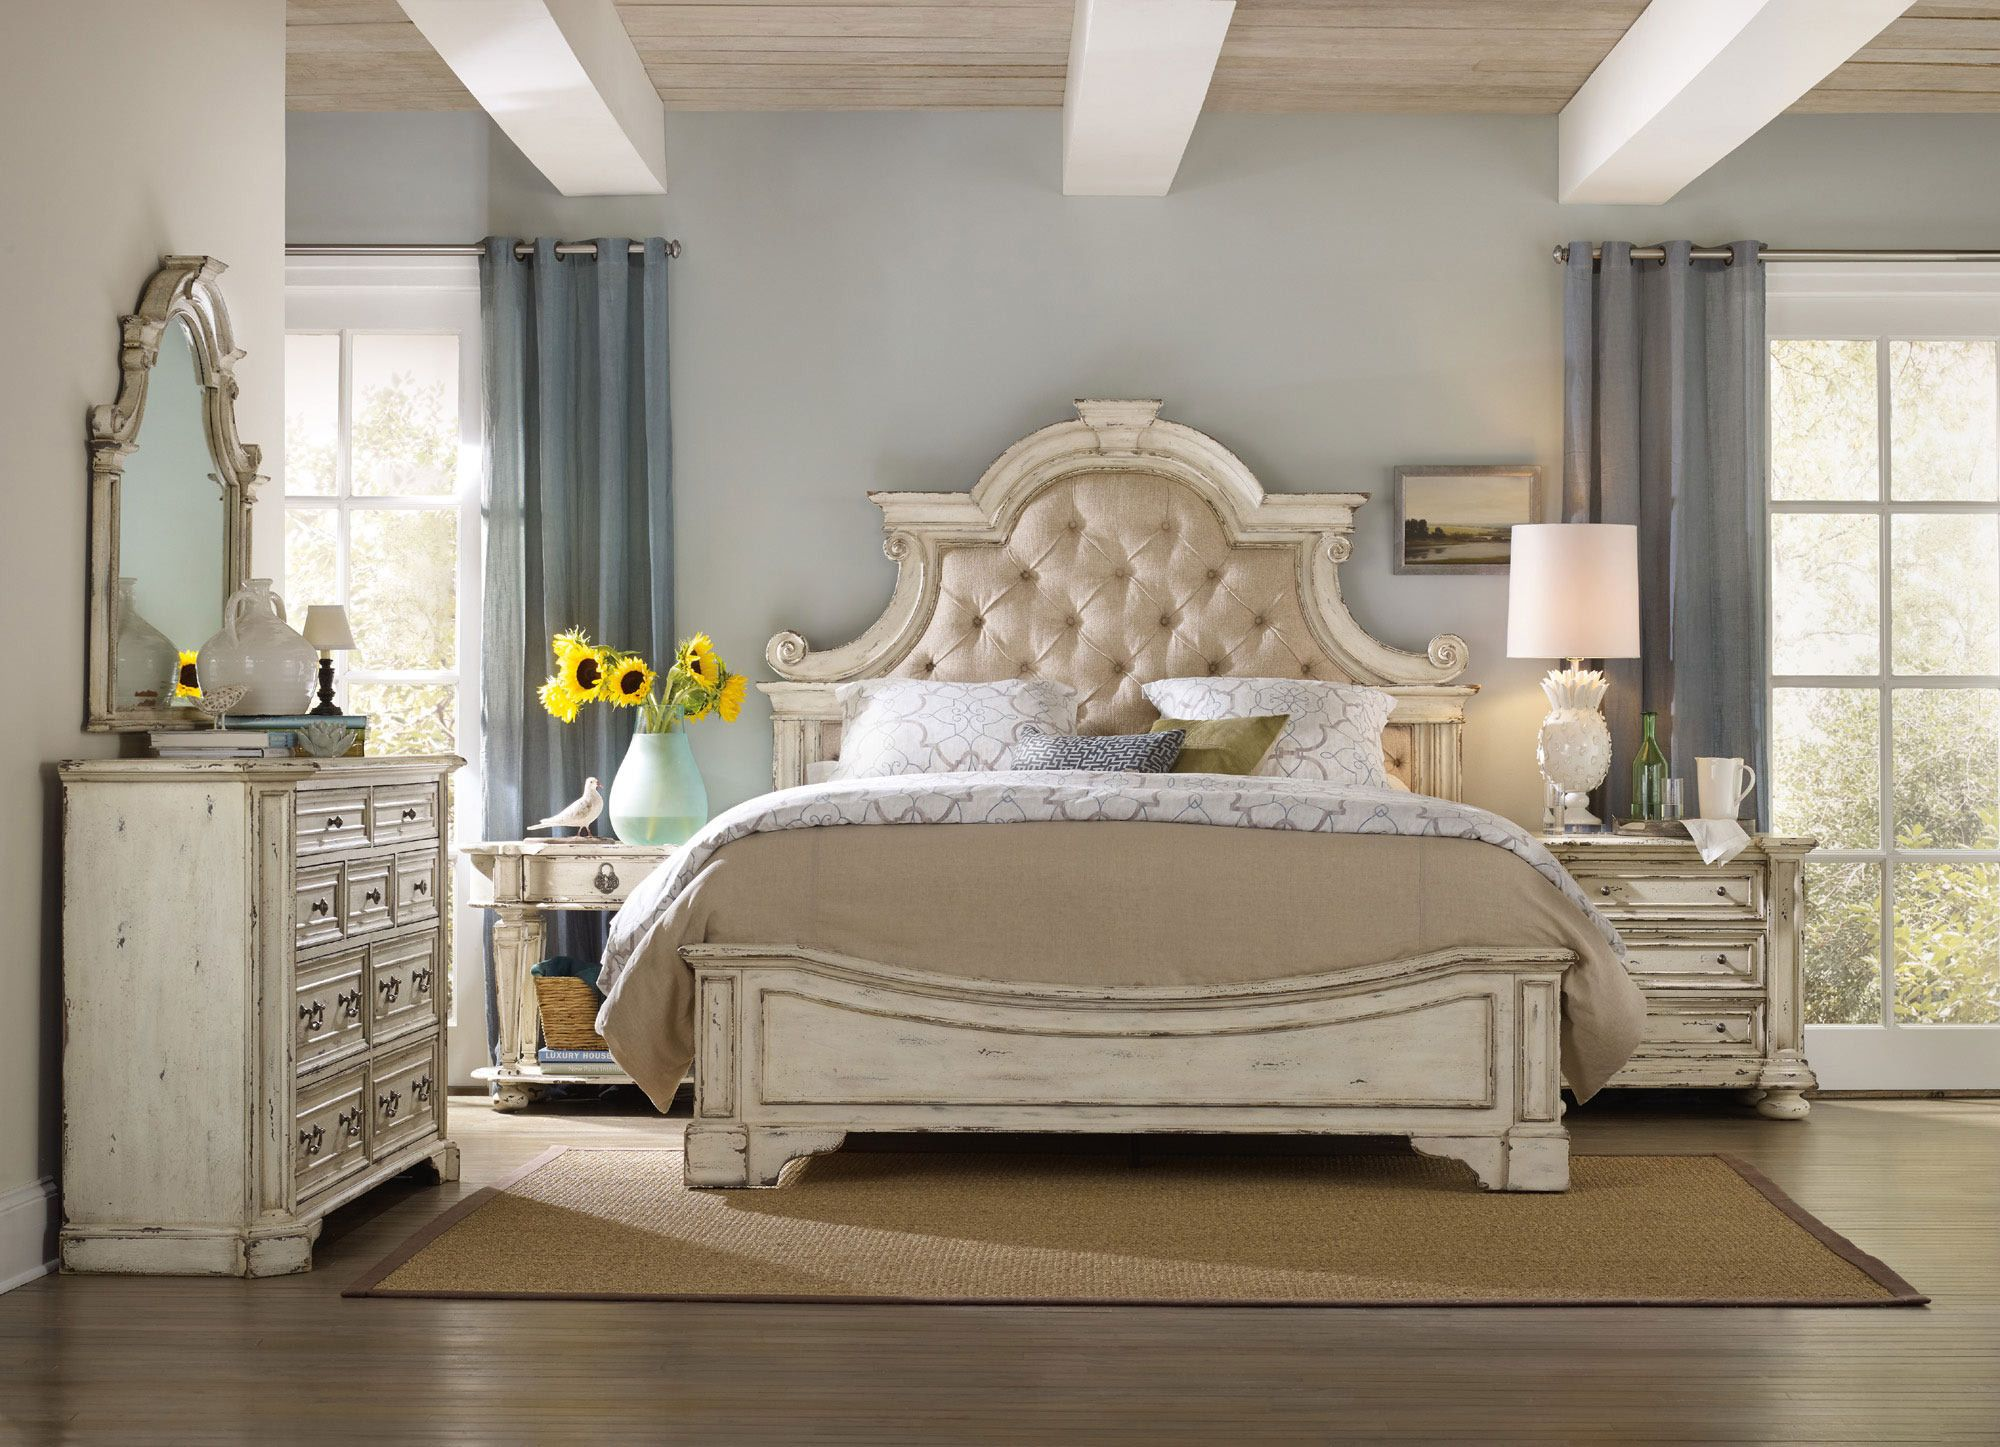 Sanctuary California King Upholstered Panel Bed in White by Hooker Furniture - Home Gallery Stores